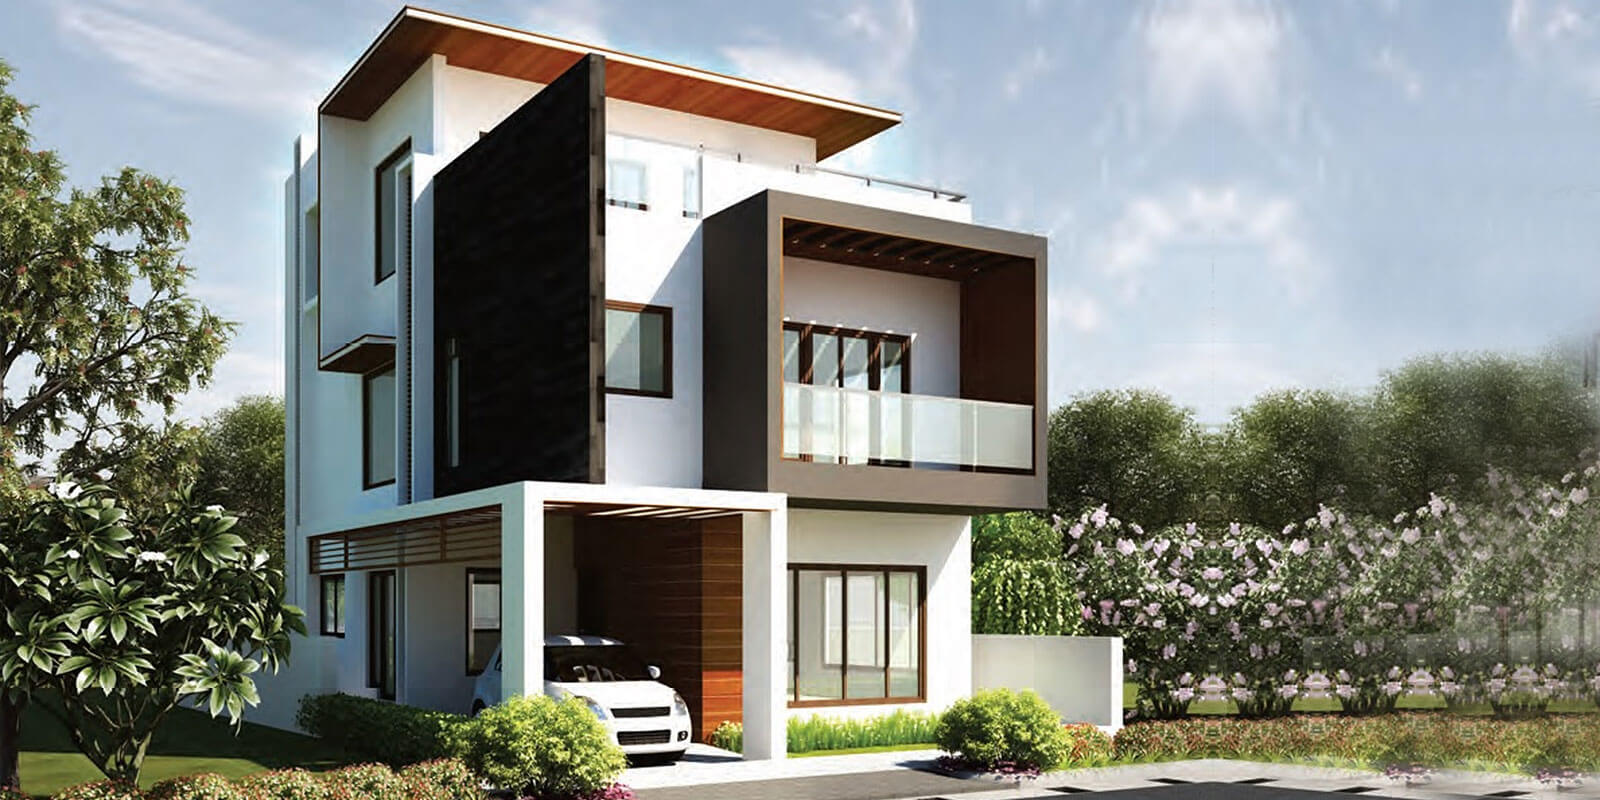 Why It's Great Selection For Residential Living?